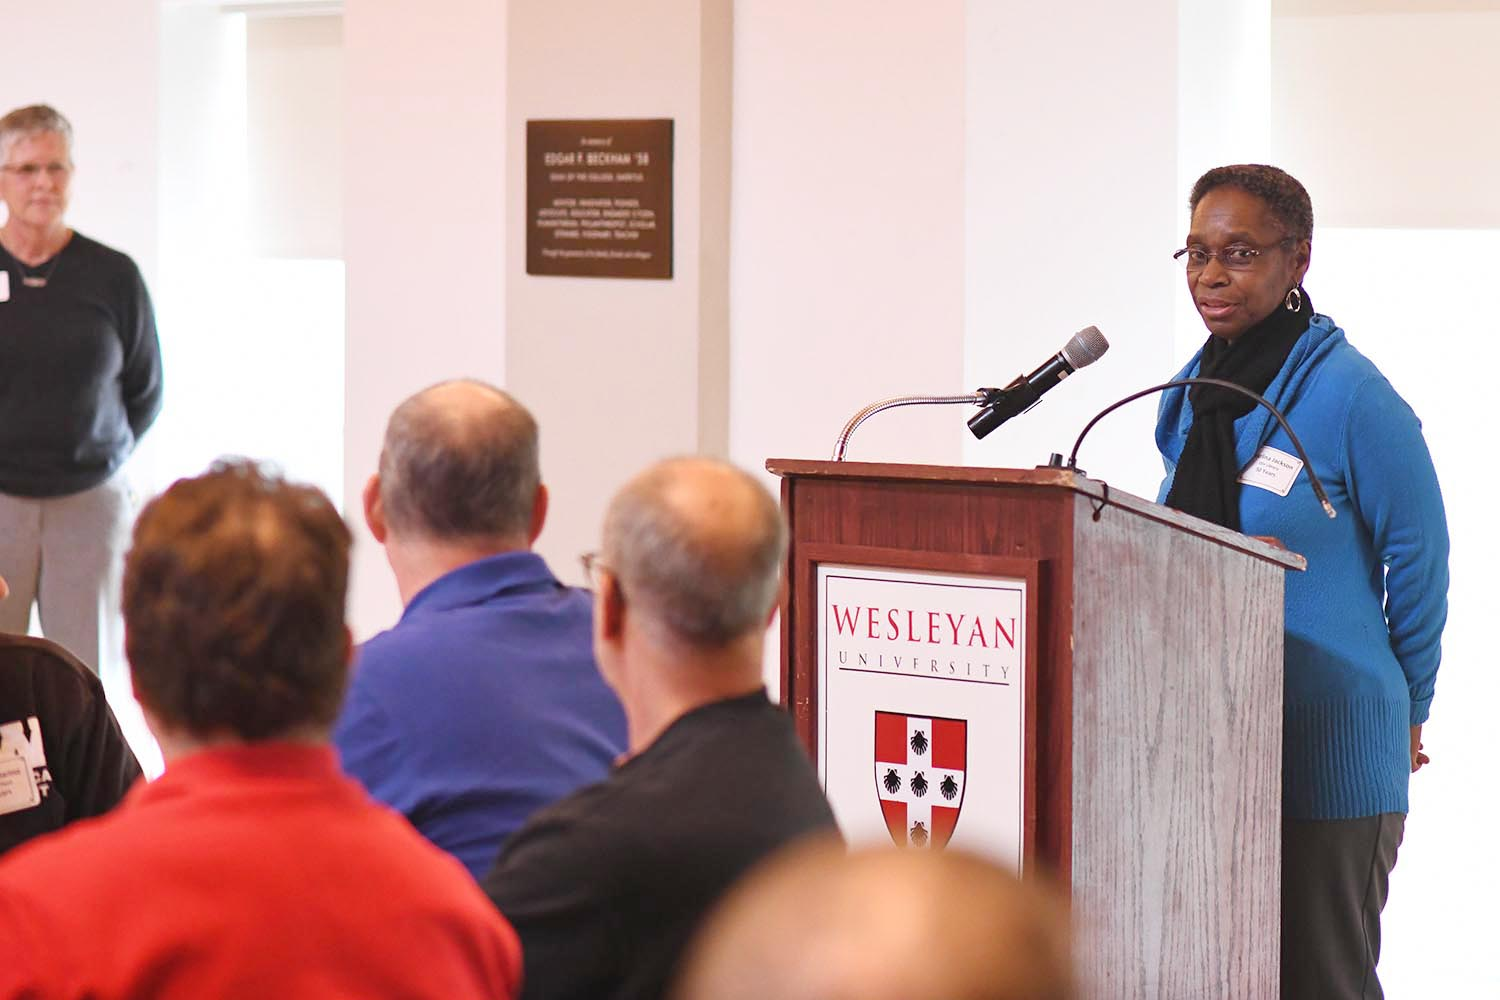 Pearlina Jackson, library assistant for Olin Library celebrated 50 years at Wesleyan. She presented a short speech about her time at Wesleyan during the luncheon.